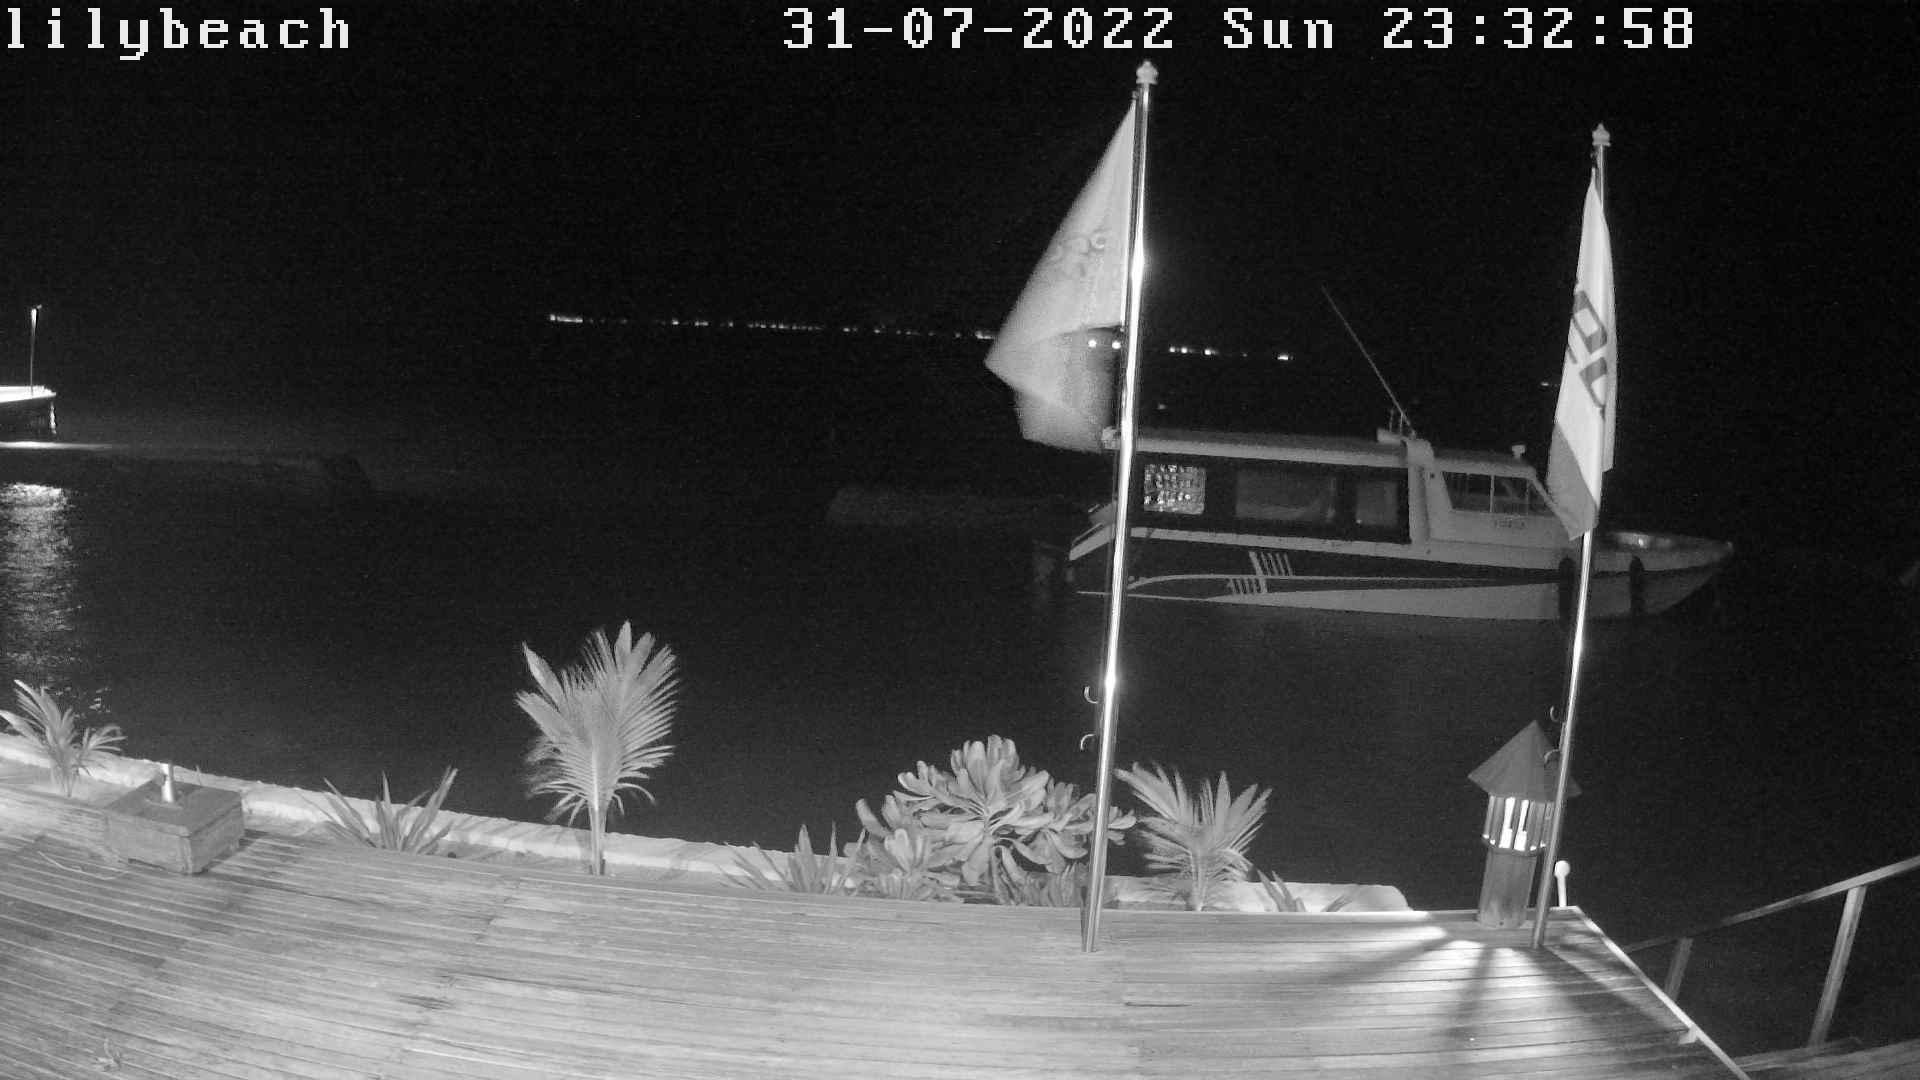 Lily Beach Webcam